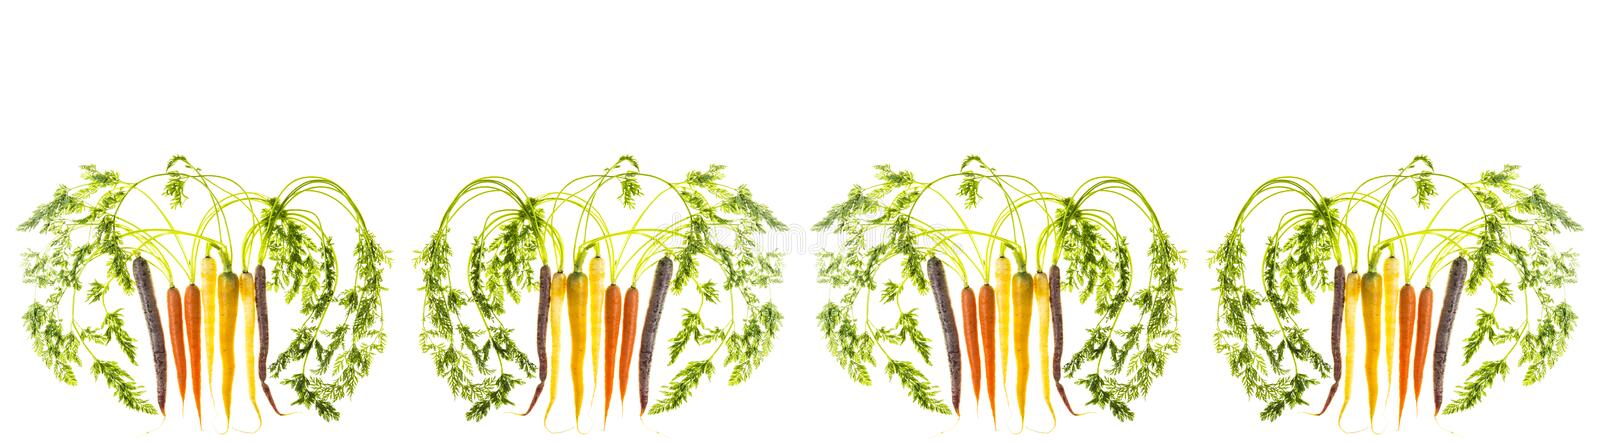 Banner of Carrots on White background royalty free stock photos